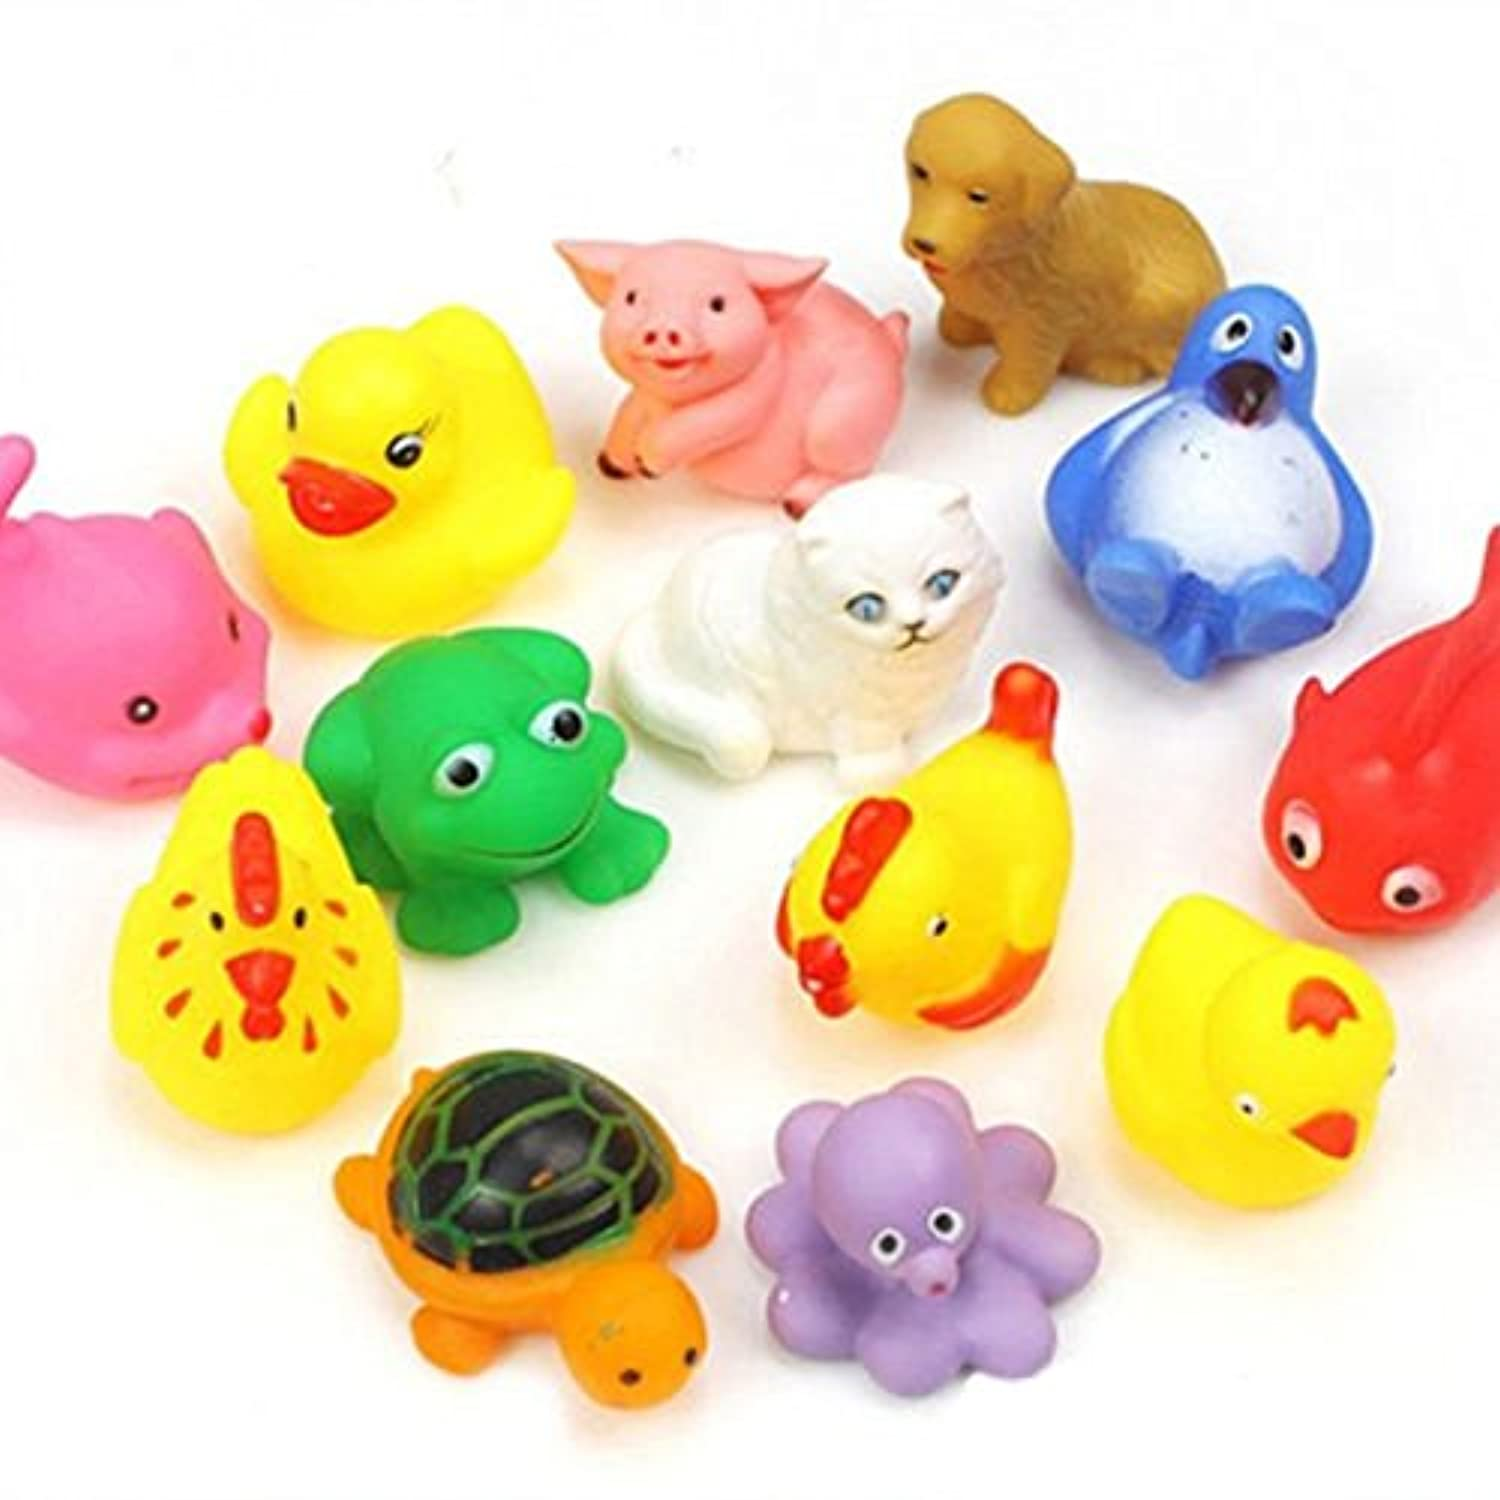 13pcs Cute Soft Rubber Float Sqeeze Sound Baby Wash Bath Toys Play Toys Animals Toys (Random colors and patterns) by Broadfashion